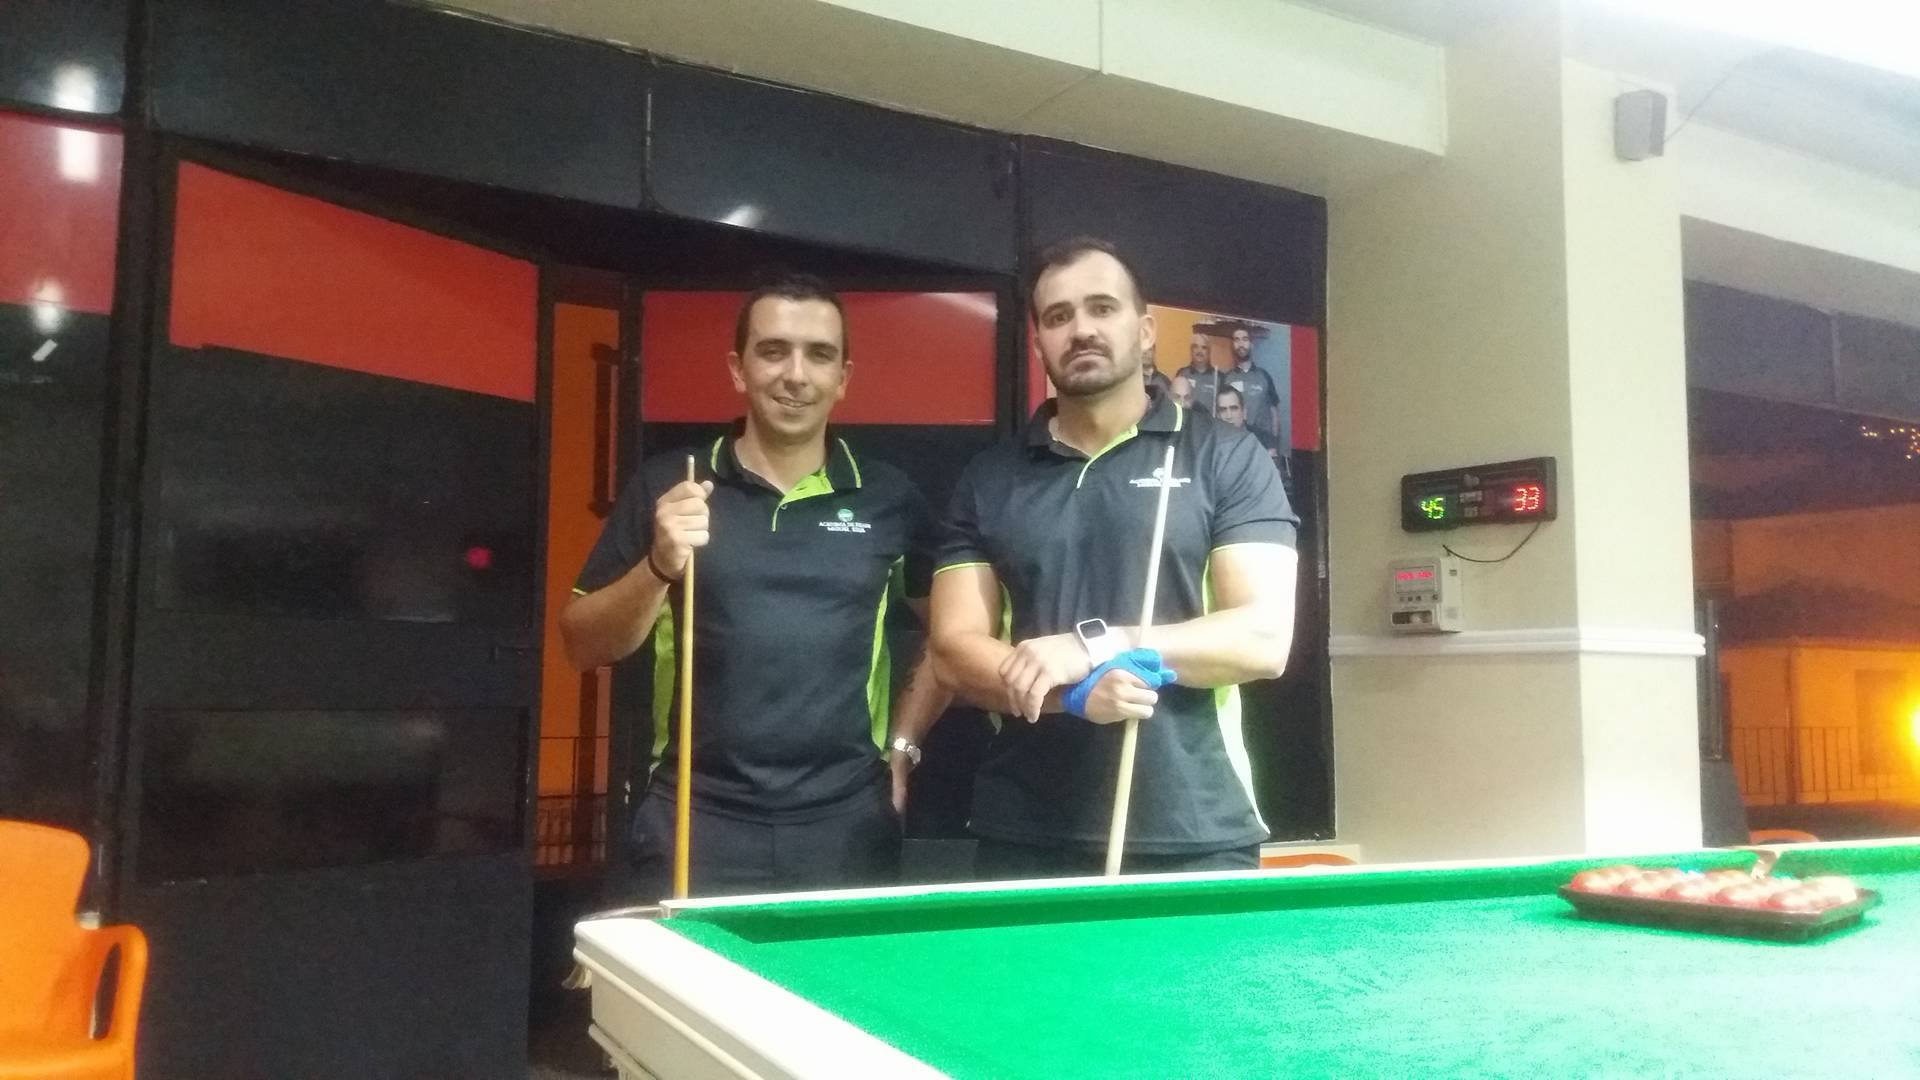 VENCEDORES DO 1º TORNEIO DE SNOOKER